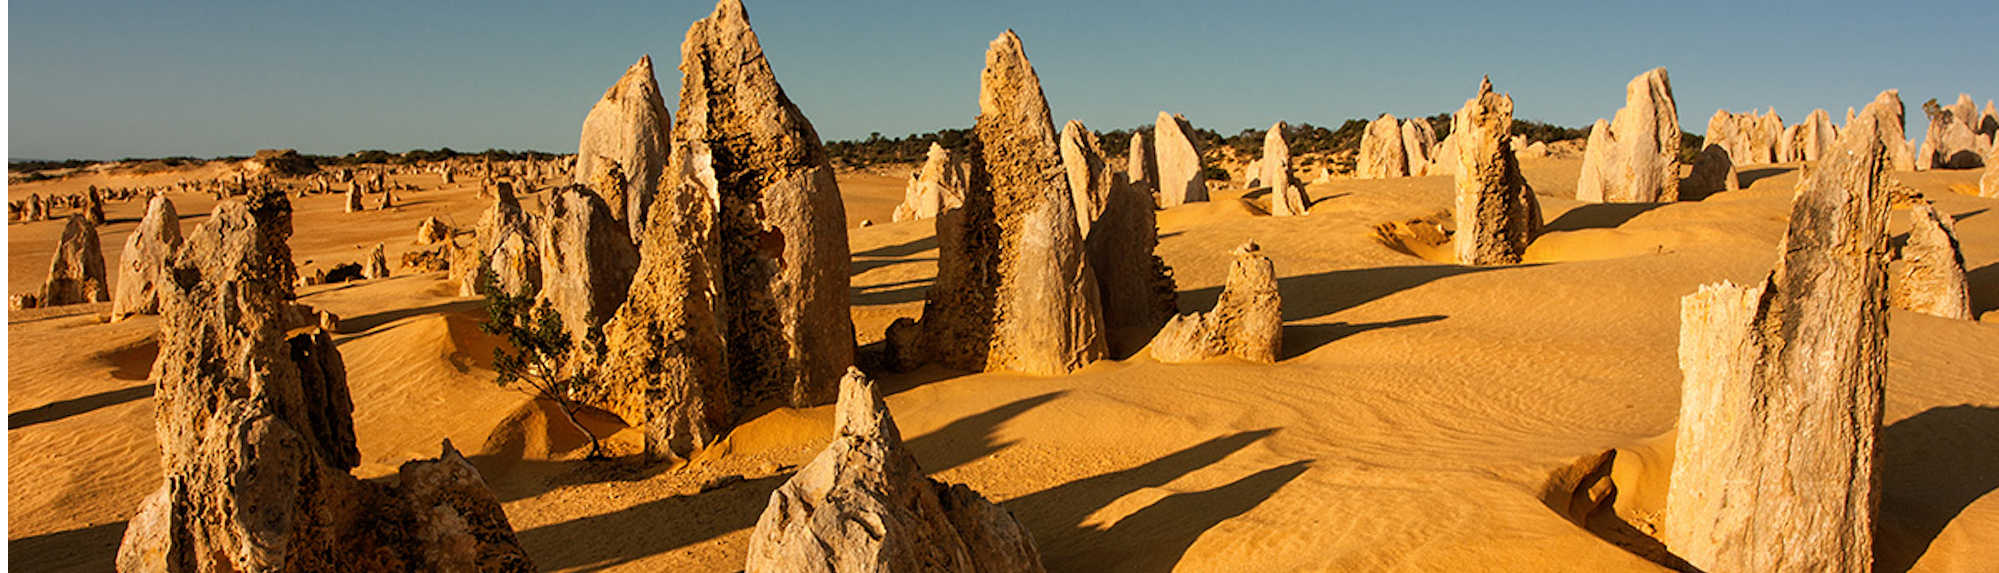 How Did the Pinnacles Form in Western Australia?